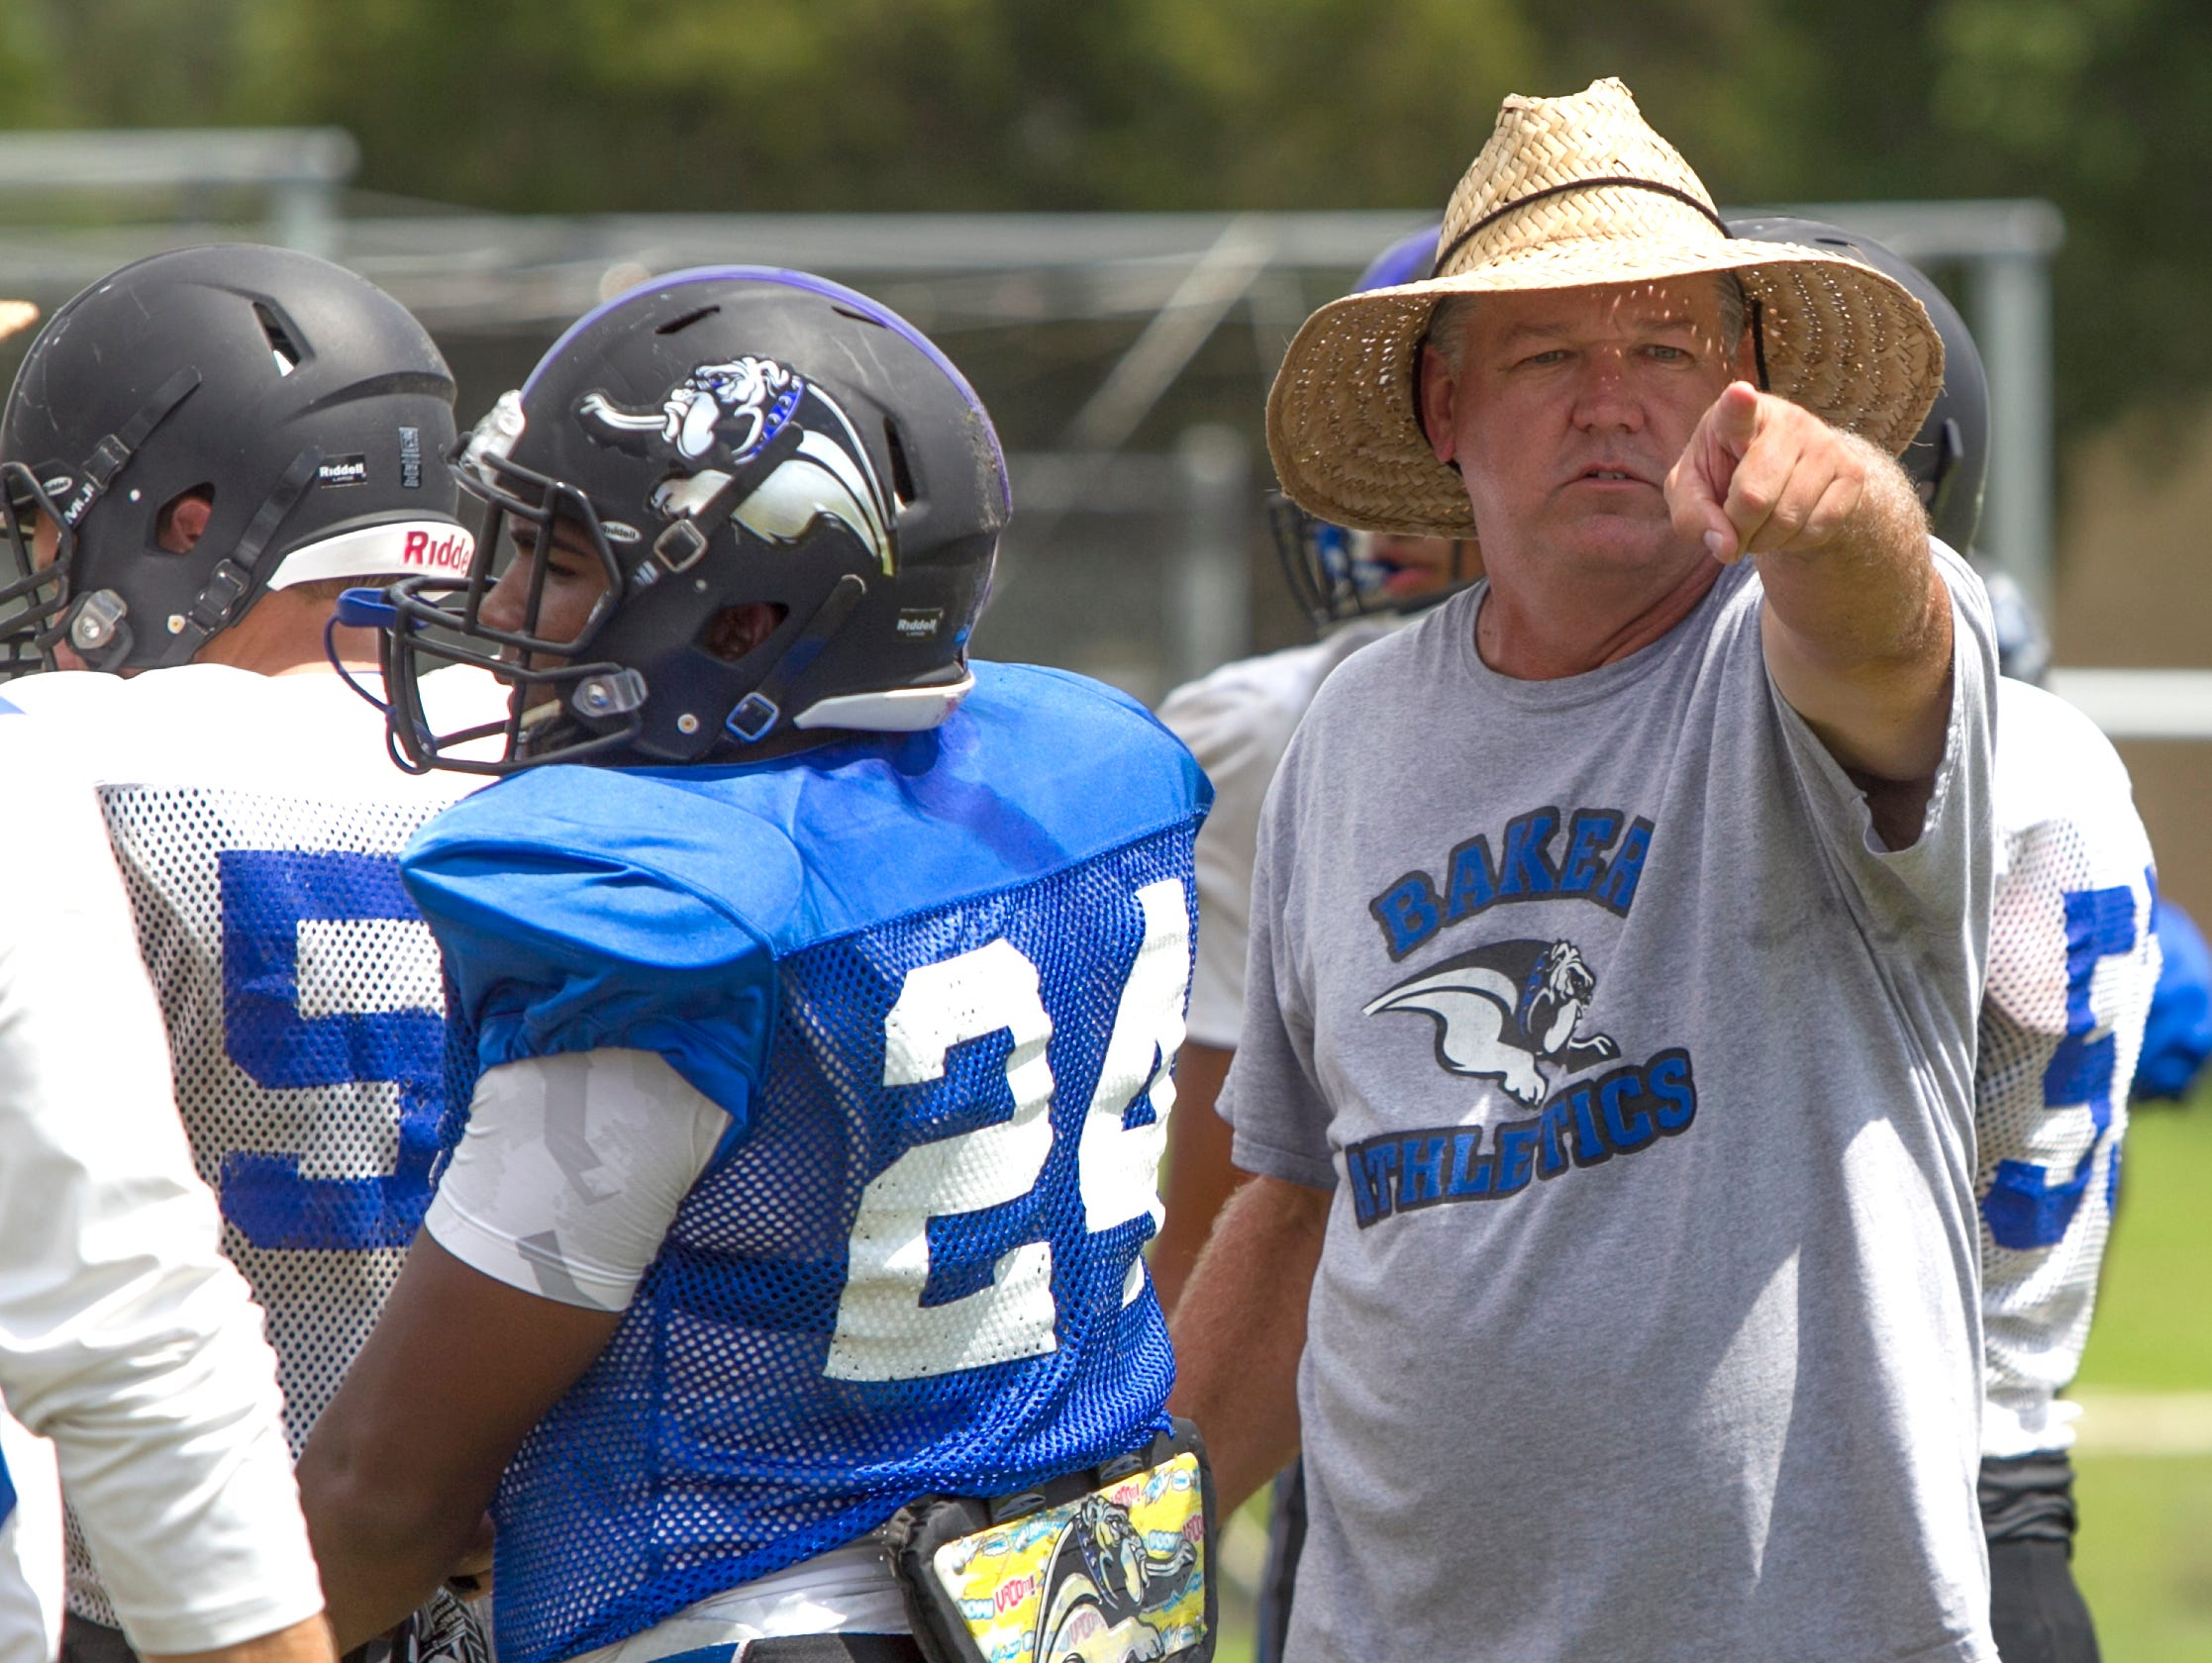 Ida Baker football coach Pat O'Brien instructs players during afternoon drills Wednesday in Cape Coral.